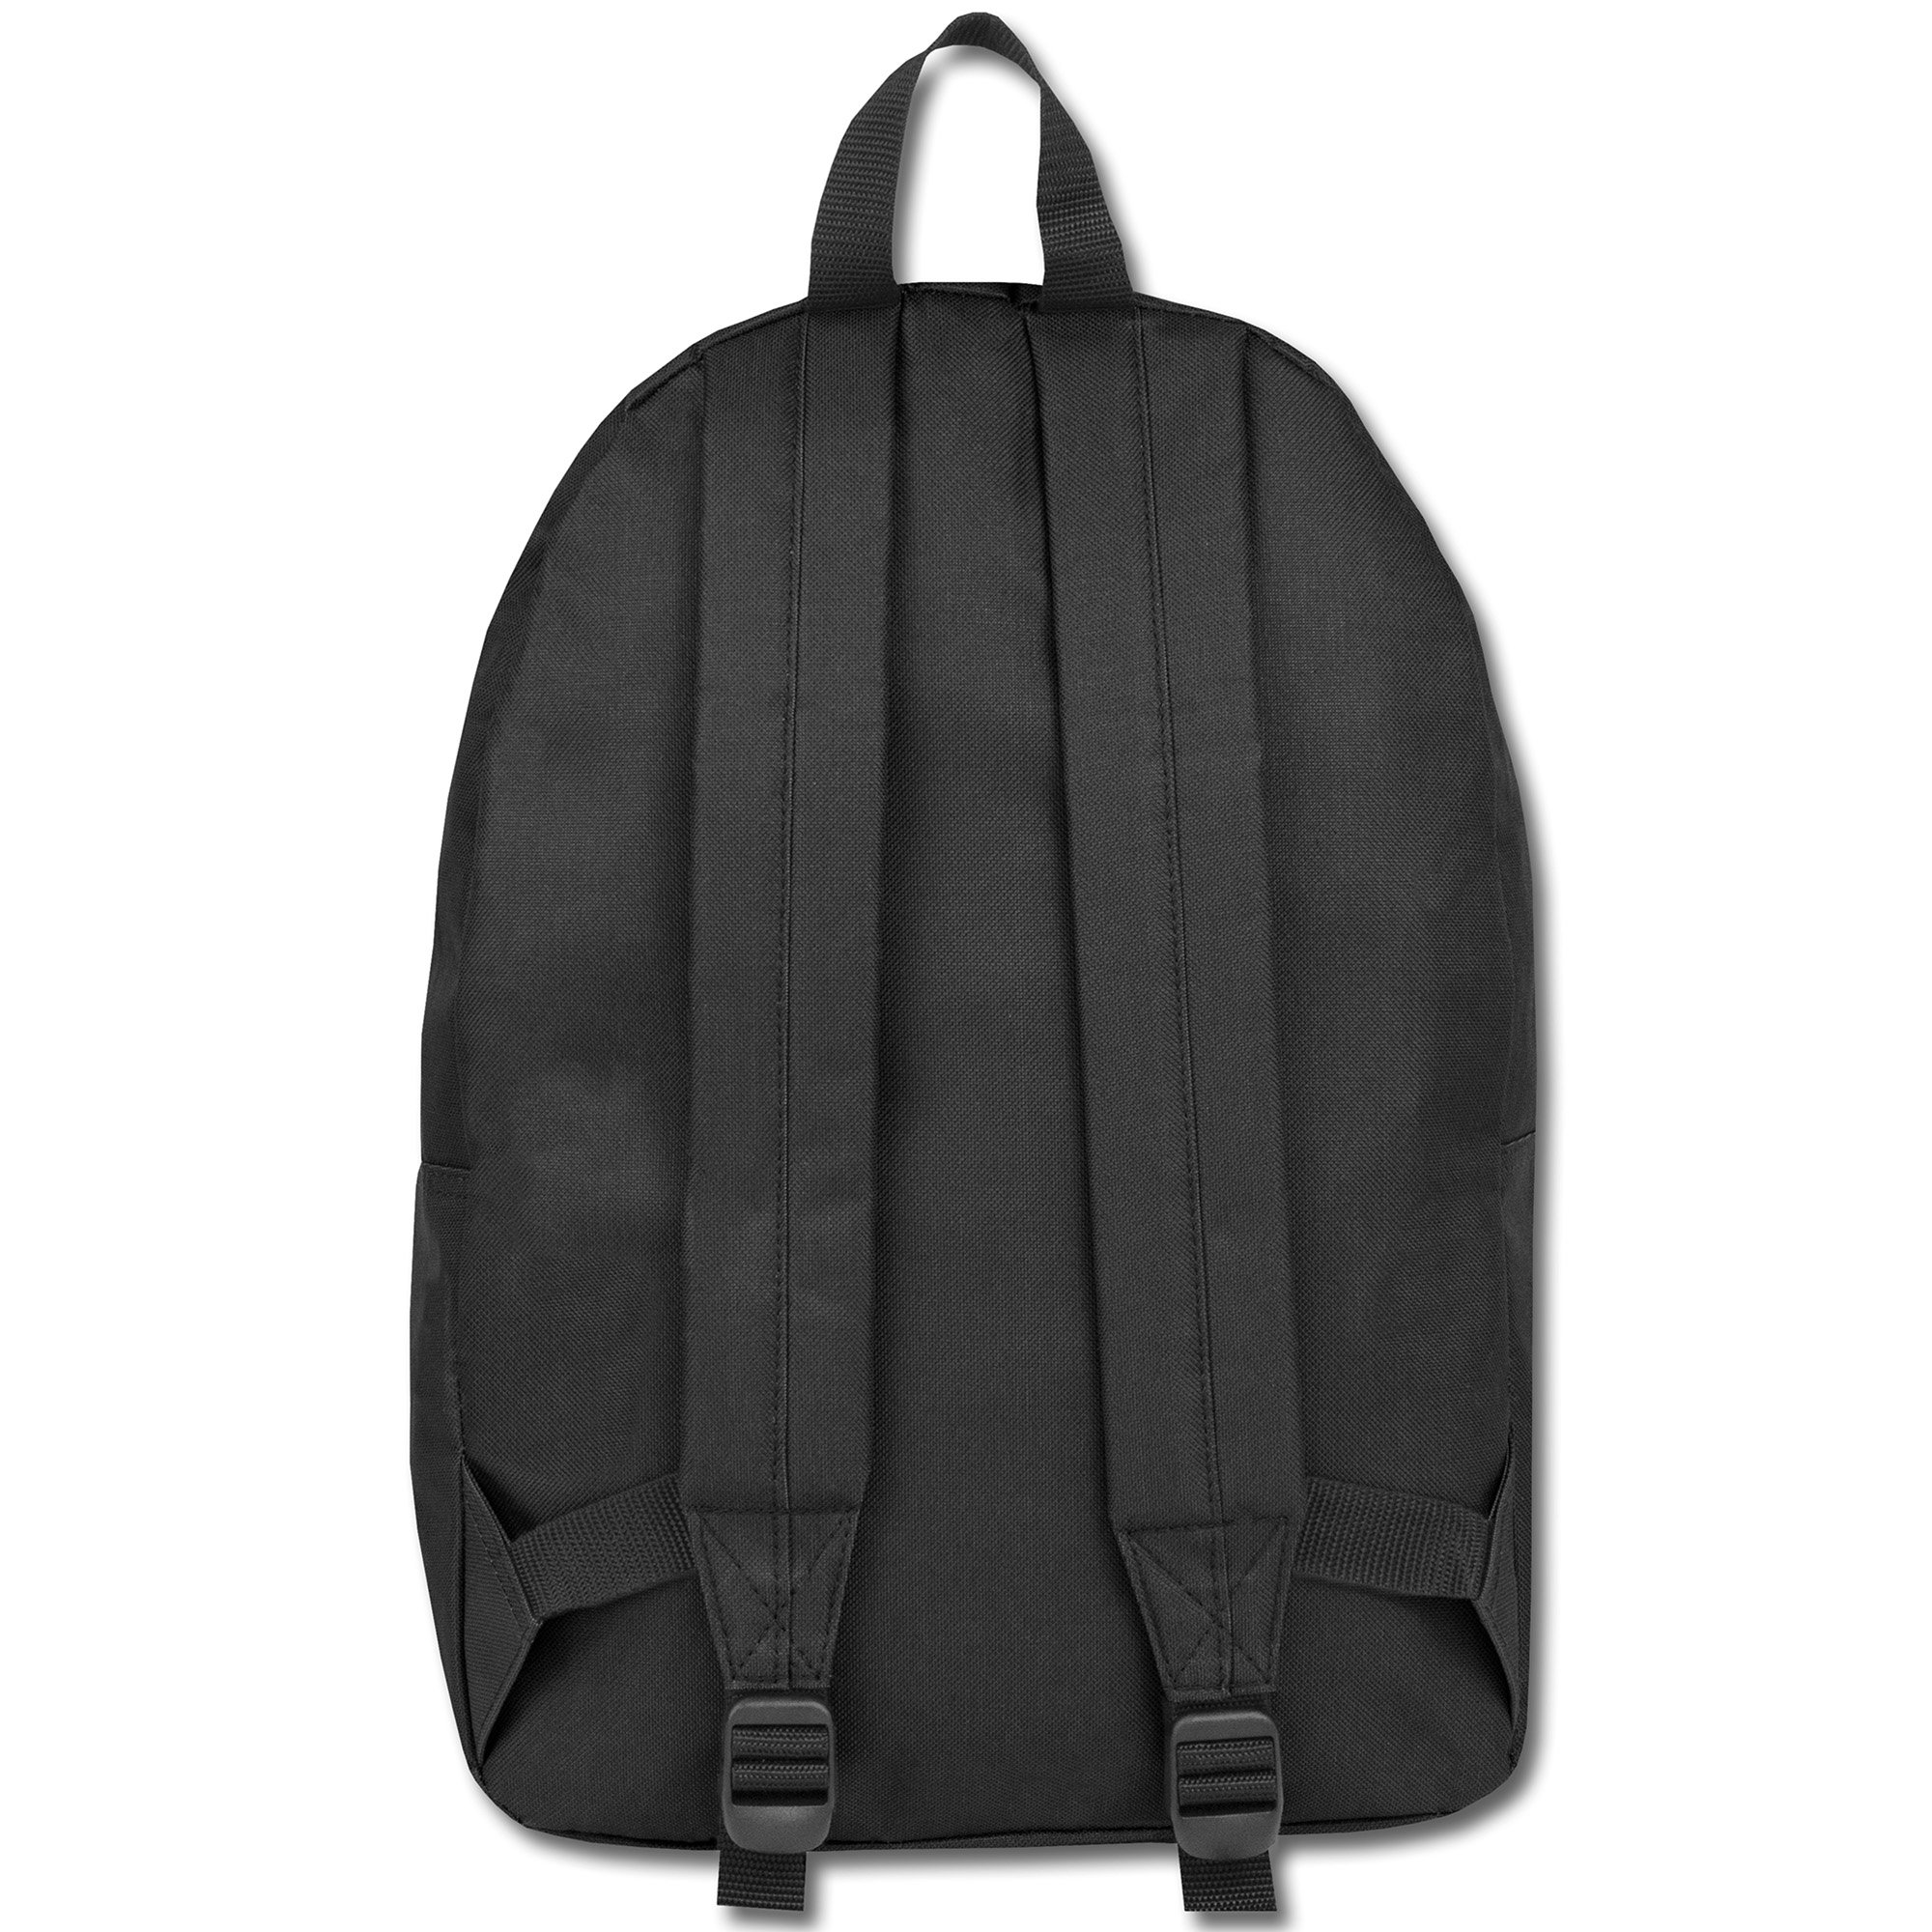 Classic Traditional Solid Backpacks with Adjustable Padded Shoulder Straps (Black) by Trail maker (Image #3)